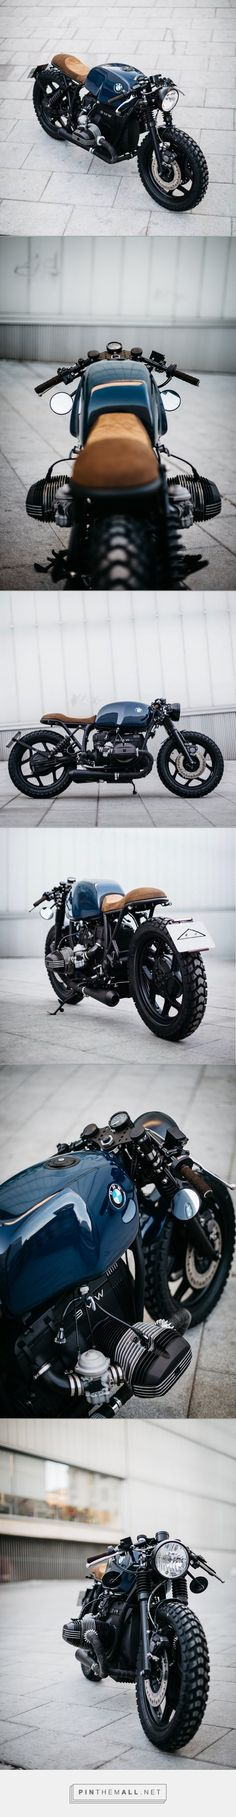 ROA Motorcycles BMW R80 [CFCM]